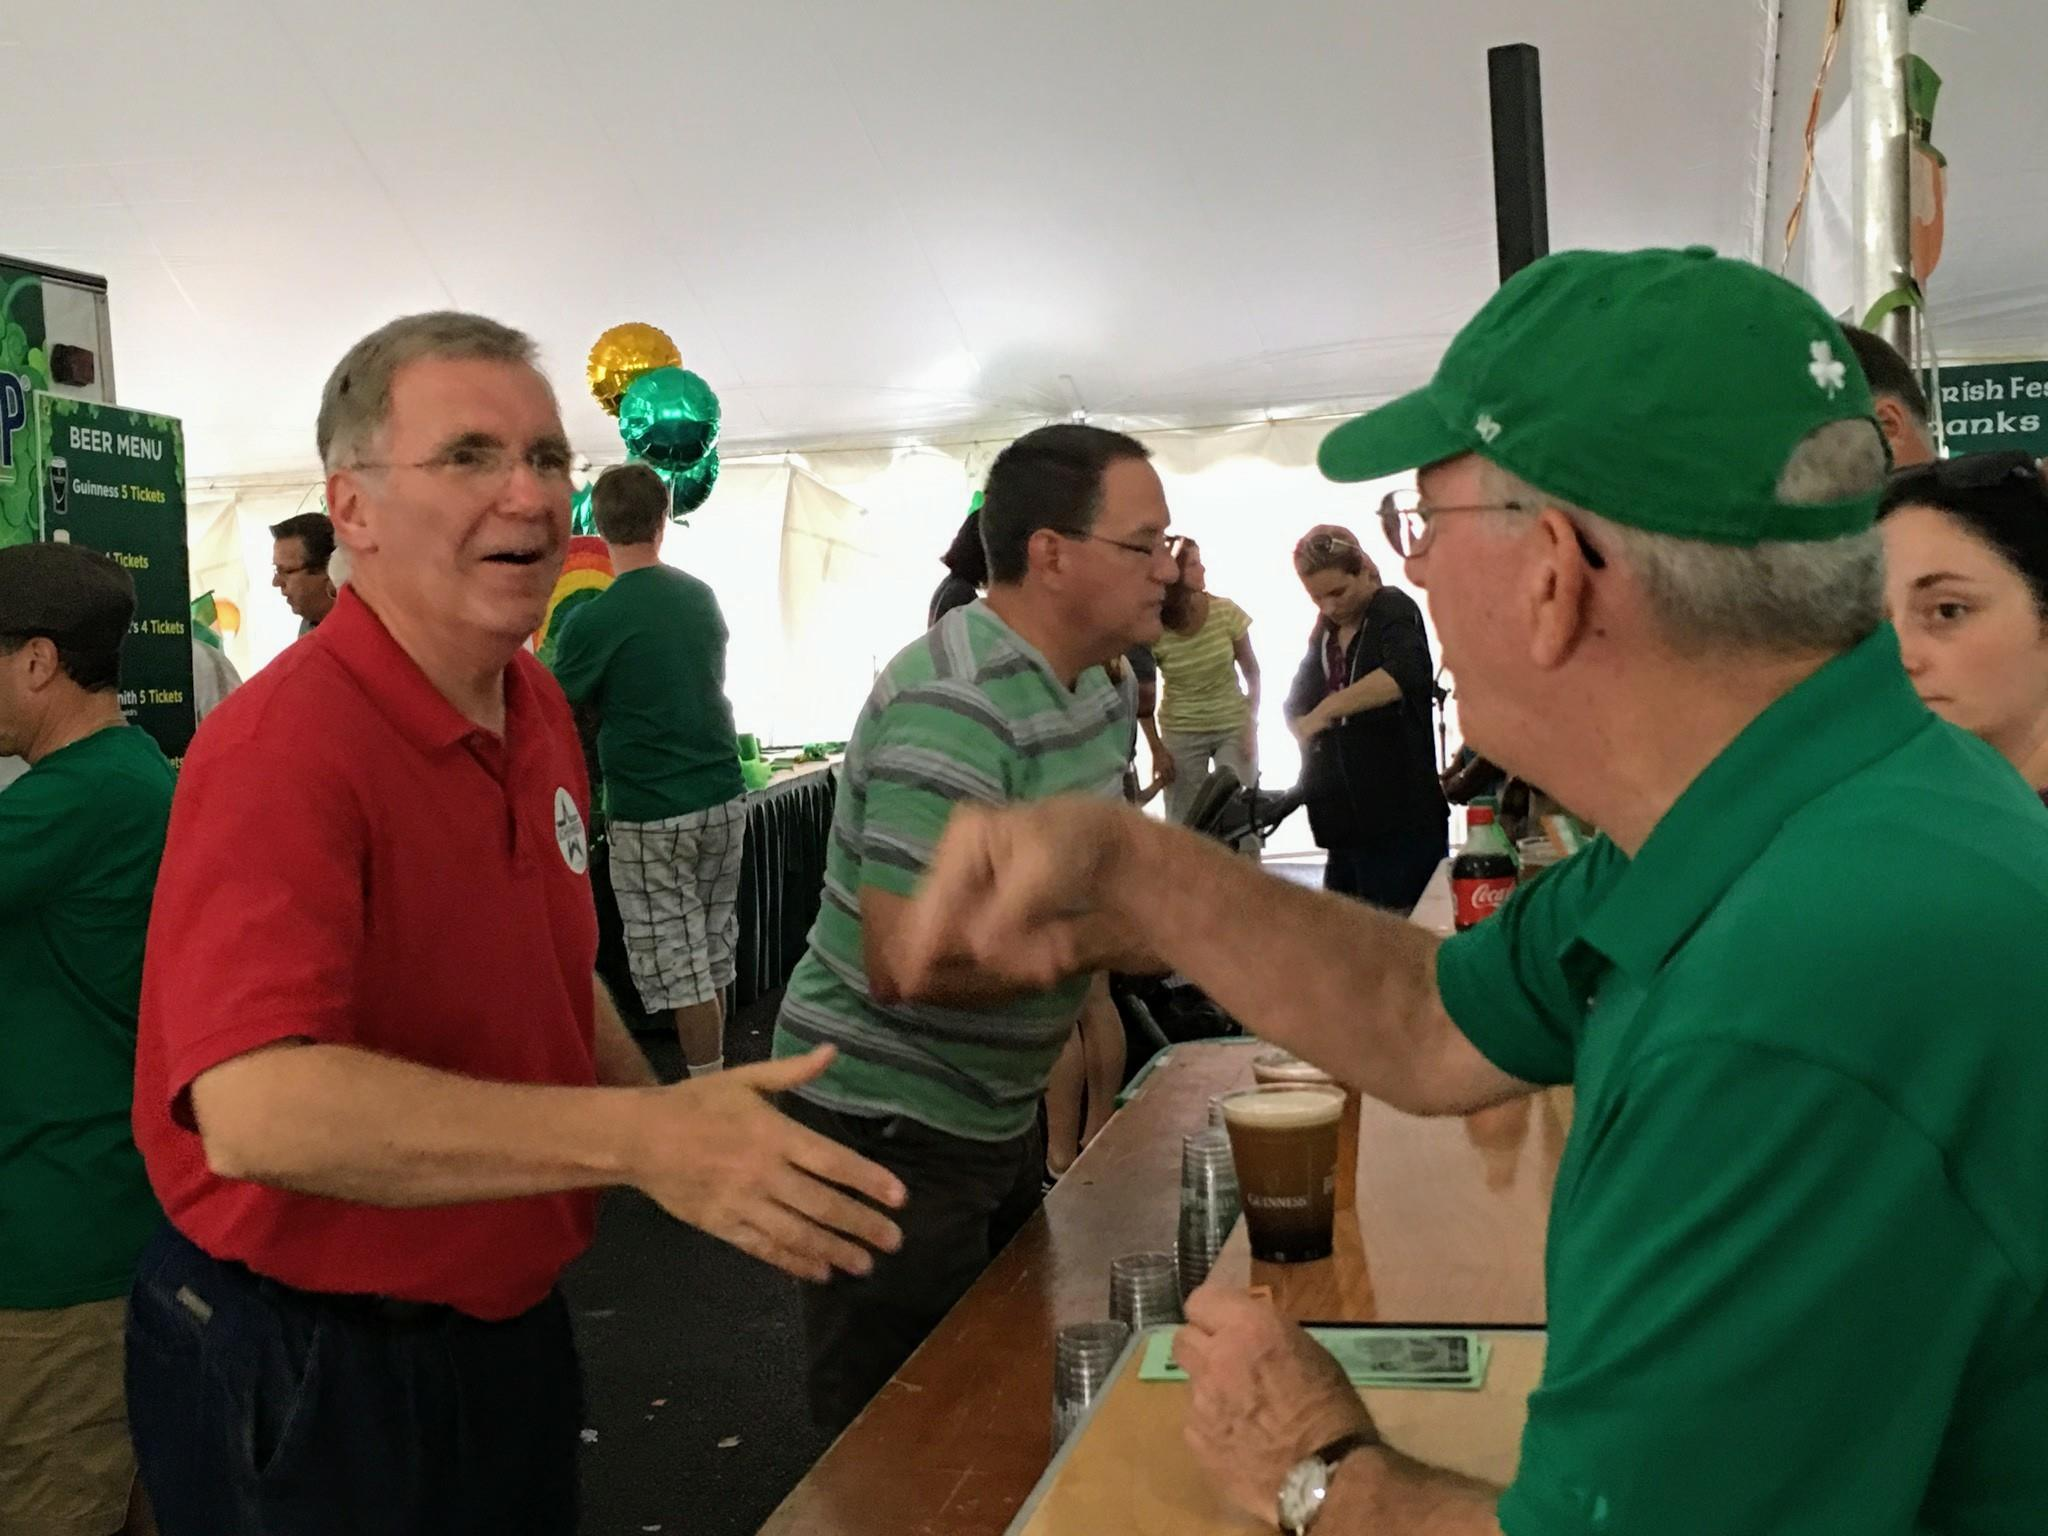 Volunteering at the Erie Irish Festival